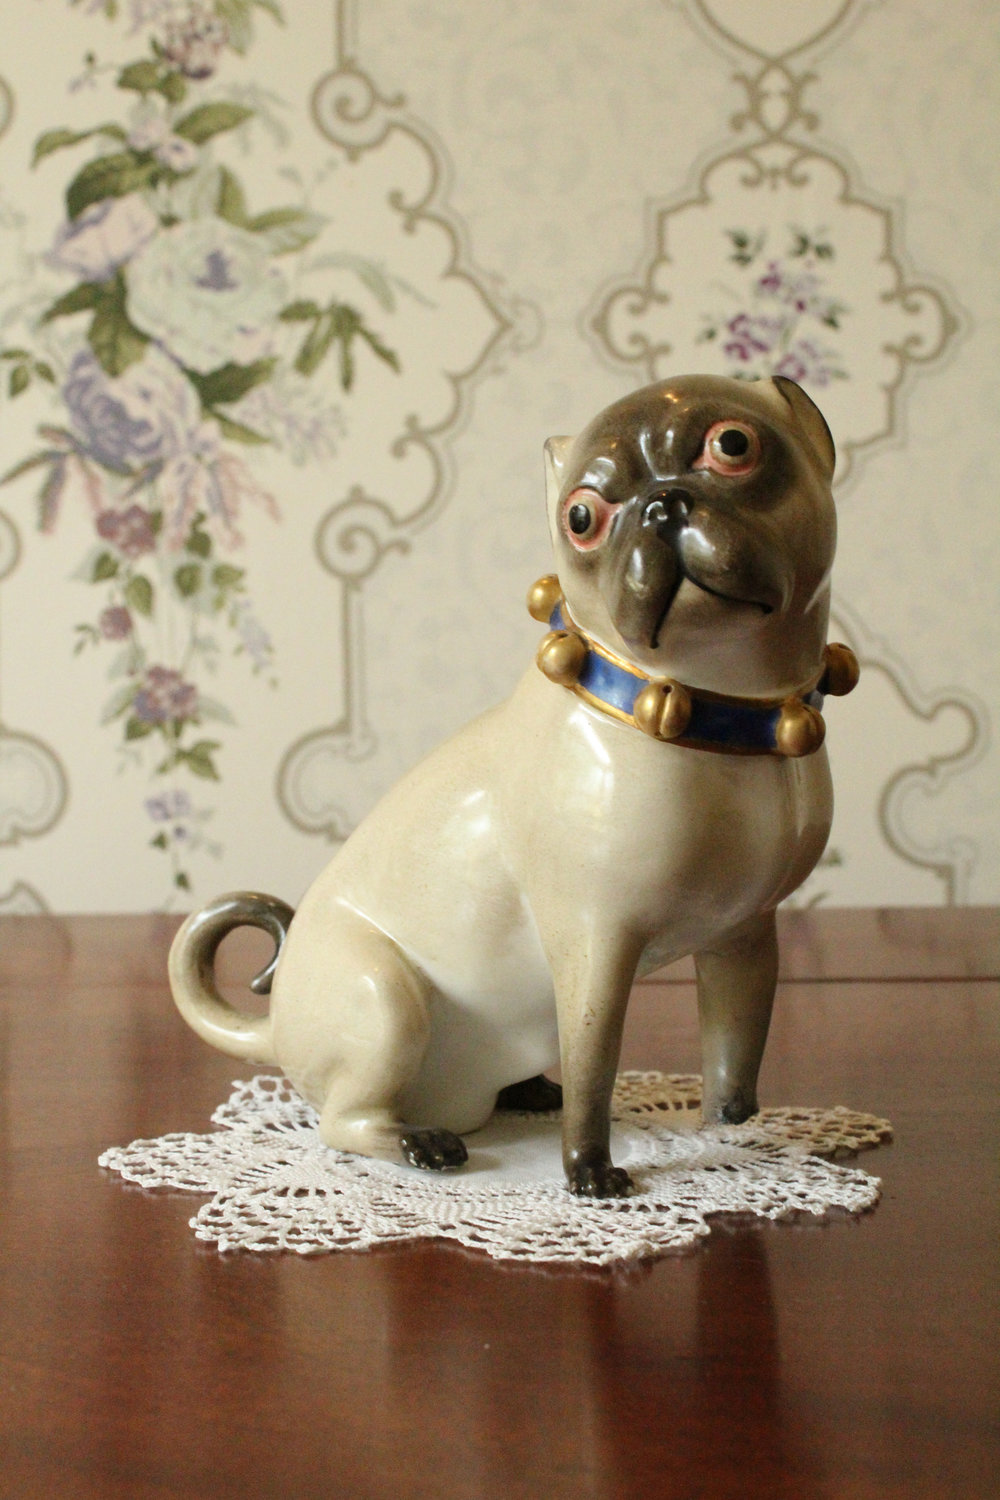 Ceramic Pug    Medium adoptable, $100 donation   Lady Macdonald was very fond of her pug, Brandy. She was so fond of him that after Brandy died, she got a taxidermist to stuff him, and displayed the pug in a wooden cage in the parlour. Alas, when Lady Macdonald sold the contents of the house after Sir Hugh's death in 1929, loyal Brandy sold for only fifty cents.We are offering this piece for adoption in memory of dear Brandy. It is also a fine example of the kind of china that Lady Macdonald would have collected.